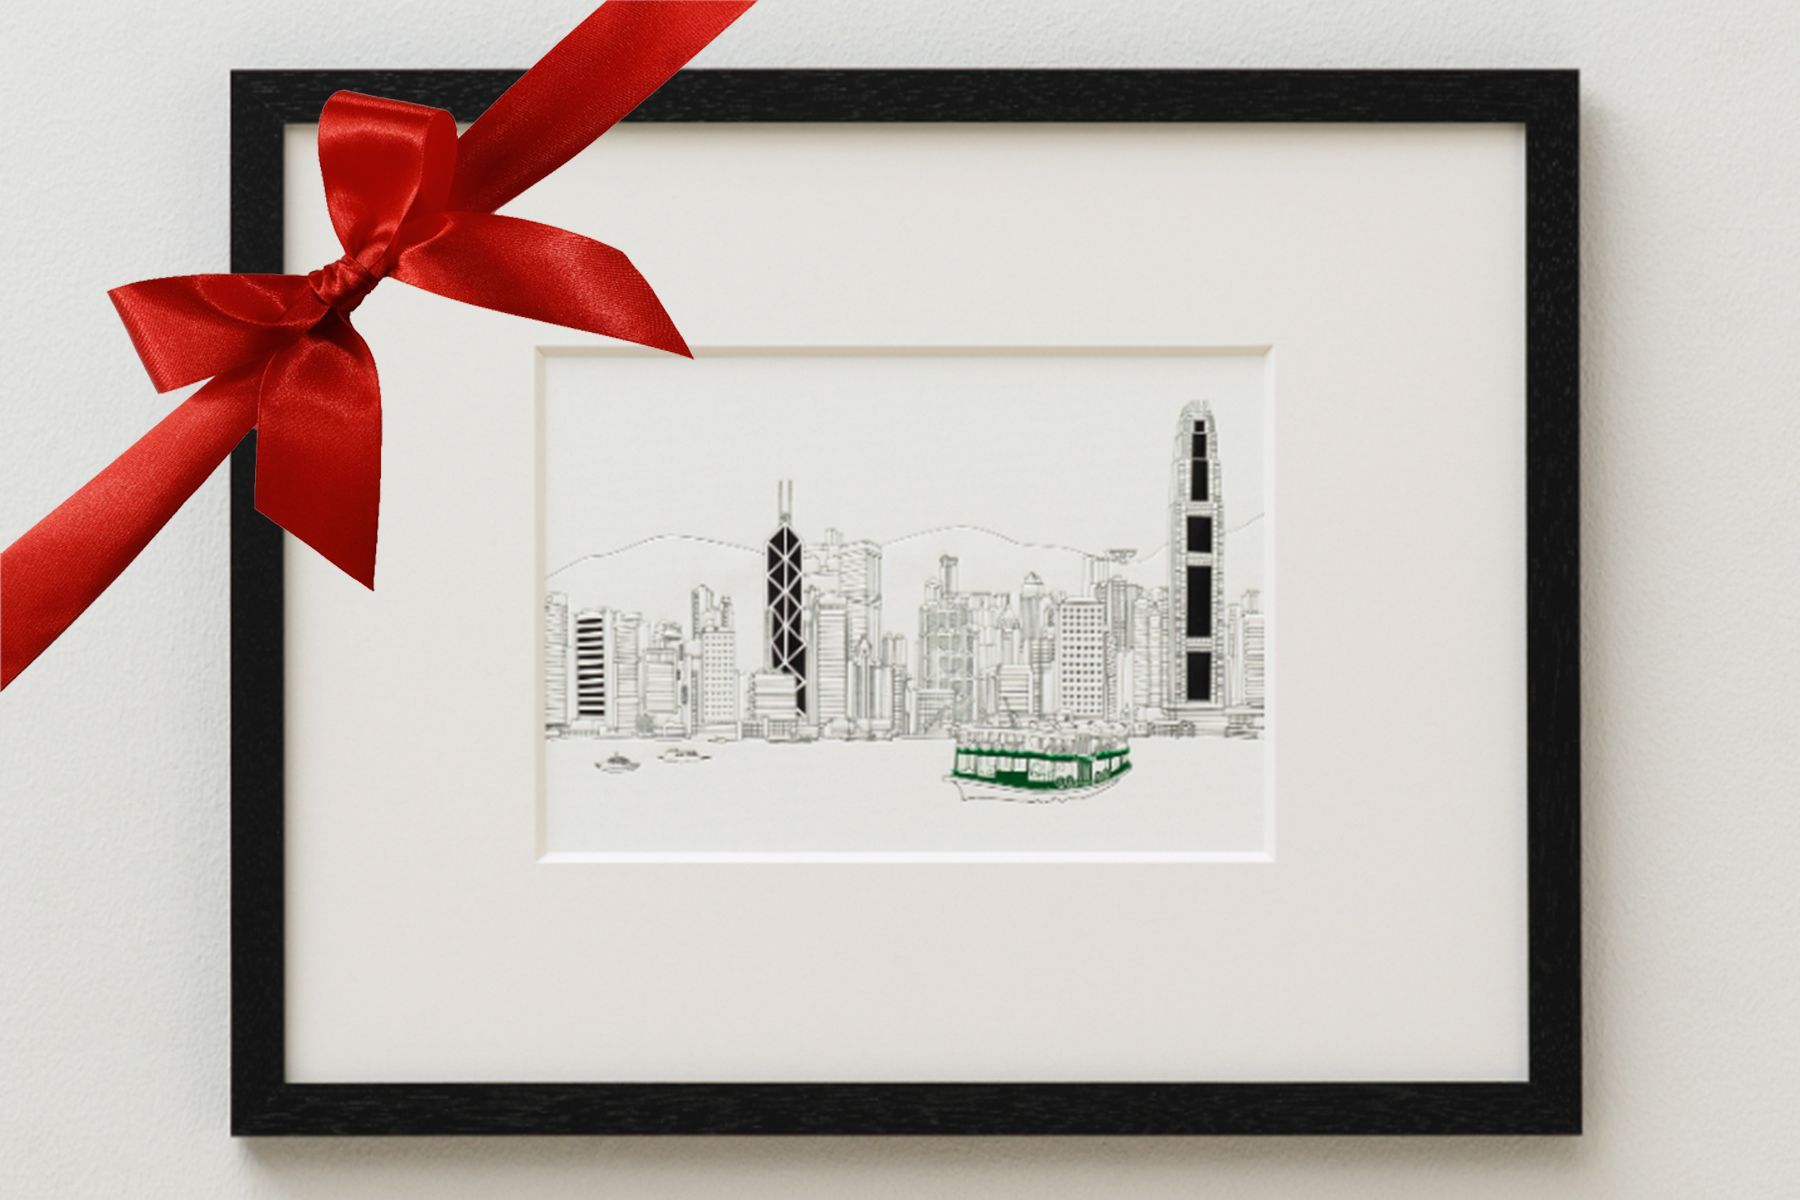 Christmas Gift Guide 2020: The Best Hong Kong Themed Gifts